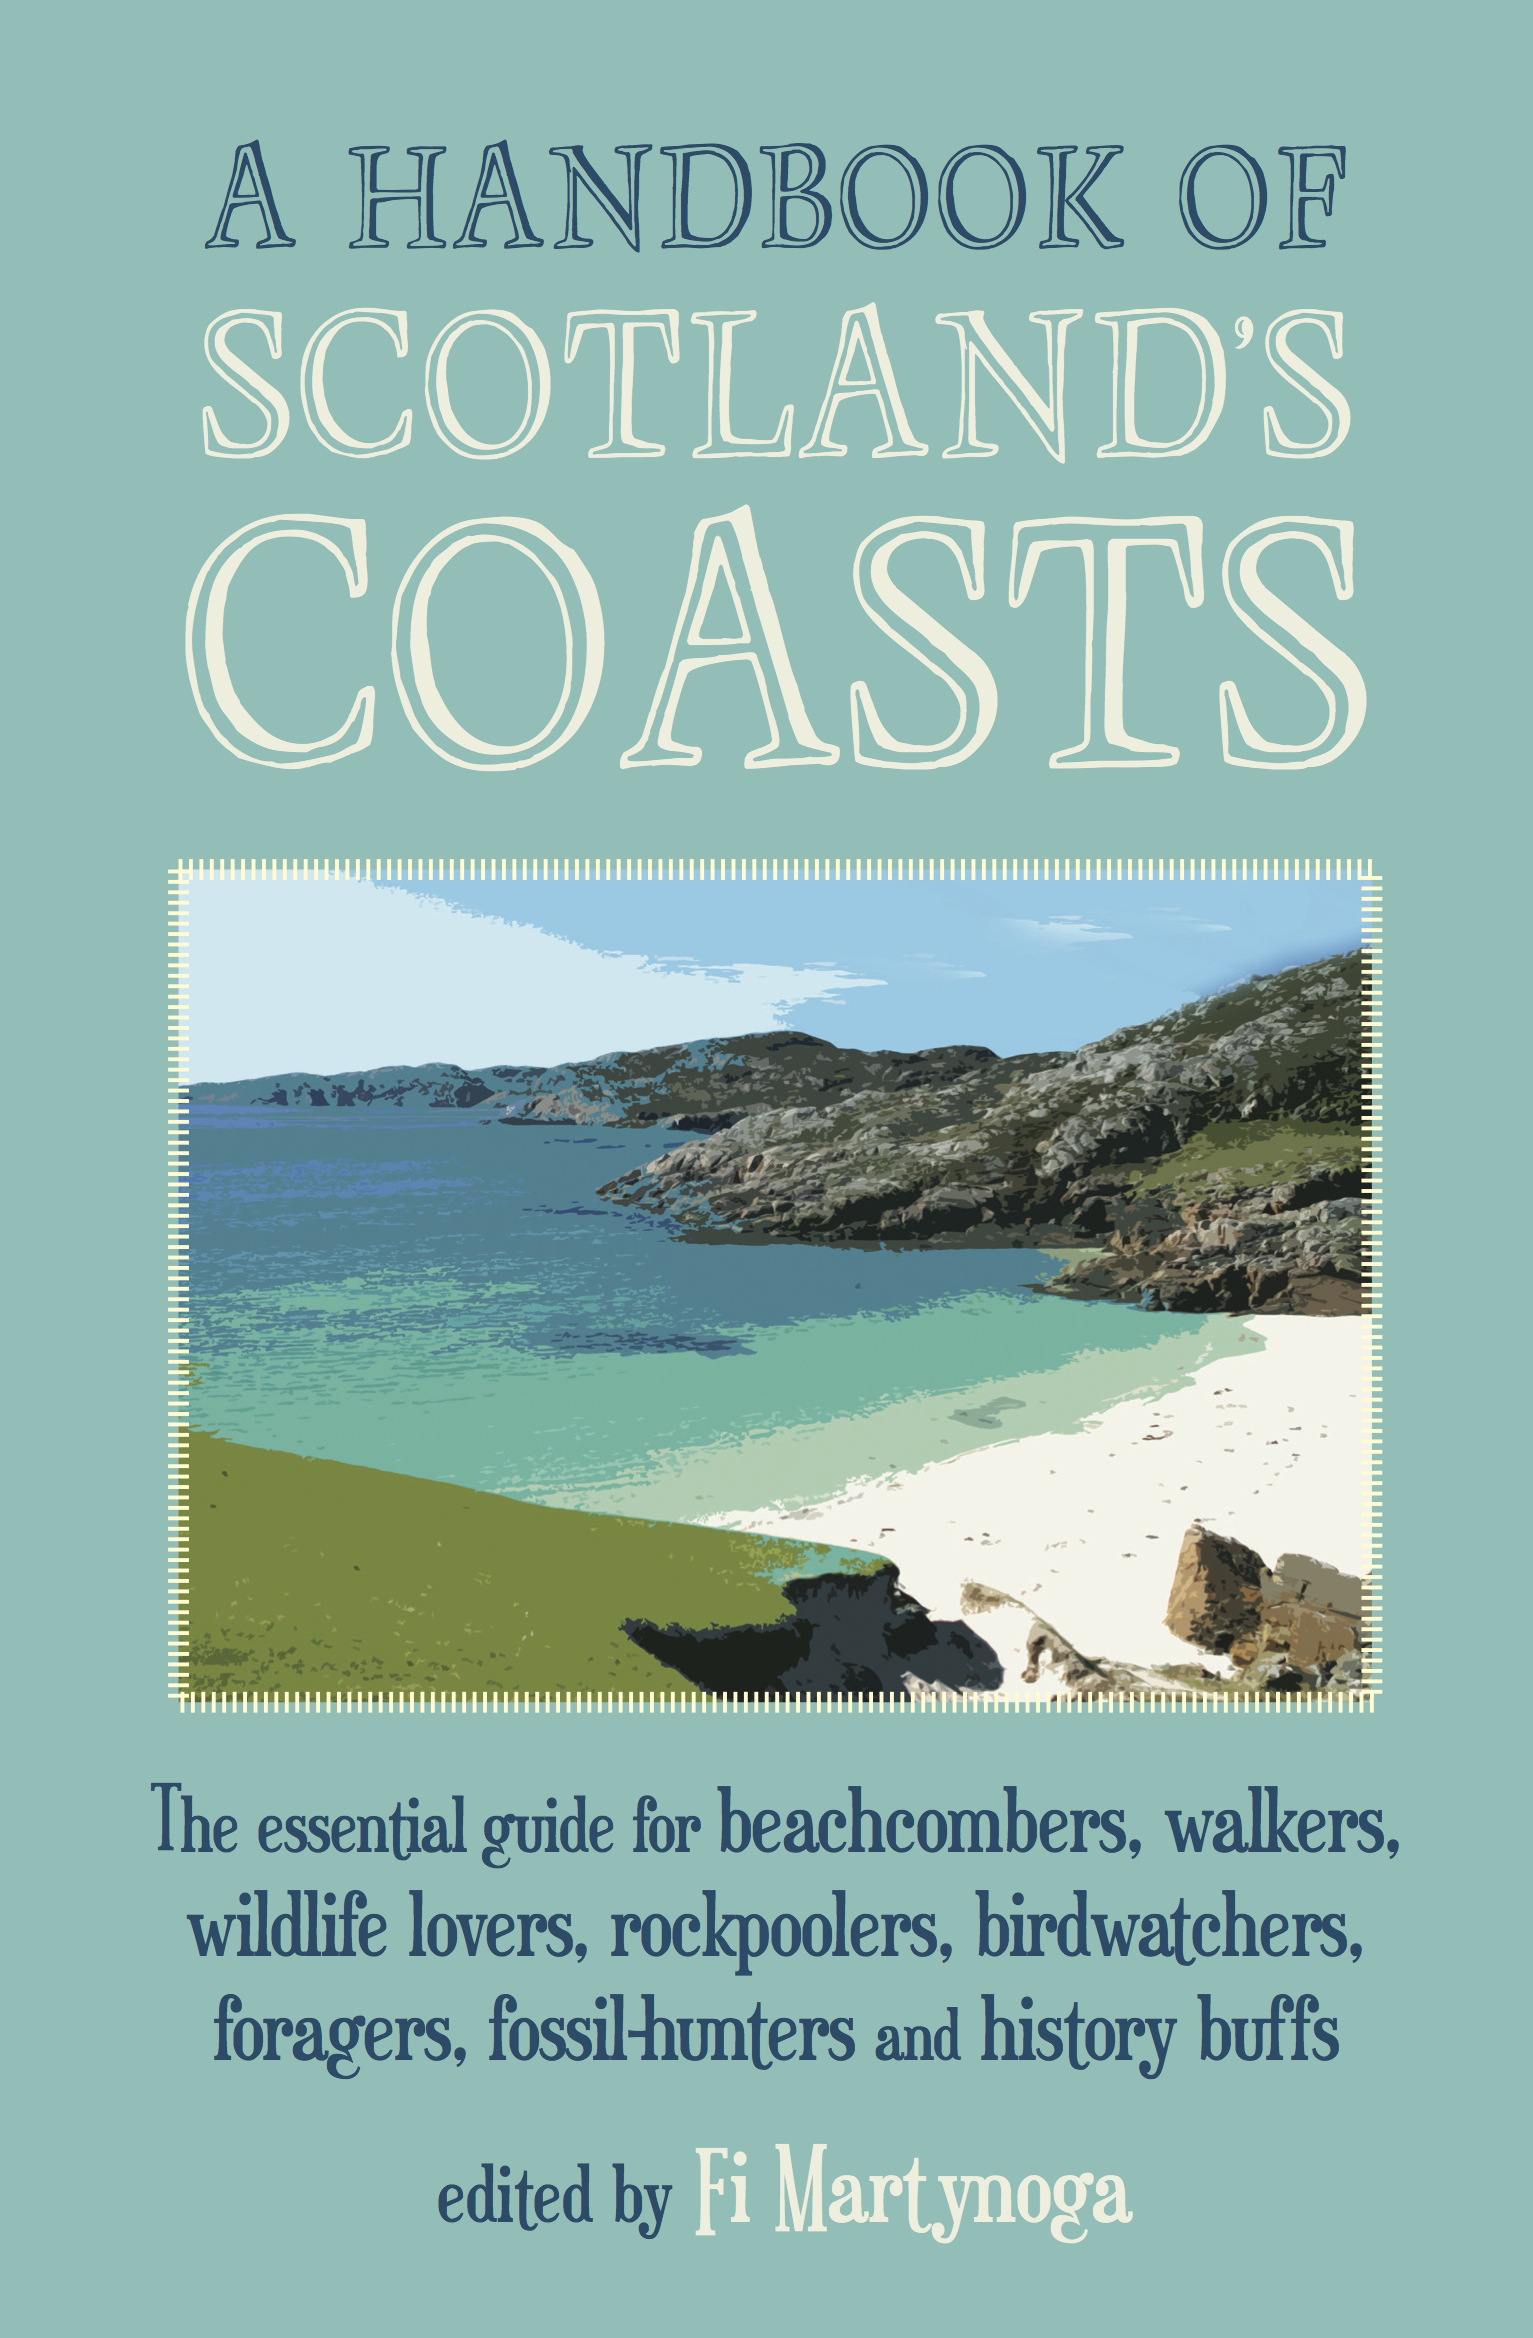 An Introduction to Scotland's Coasts